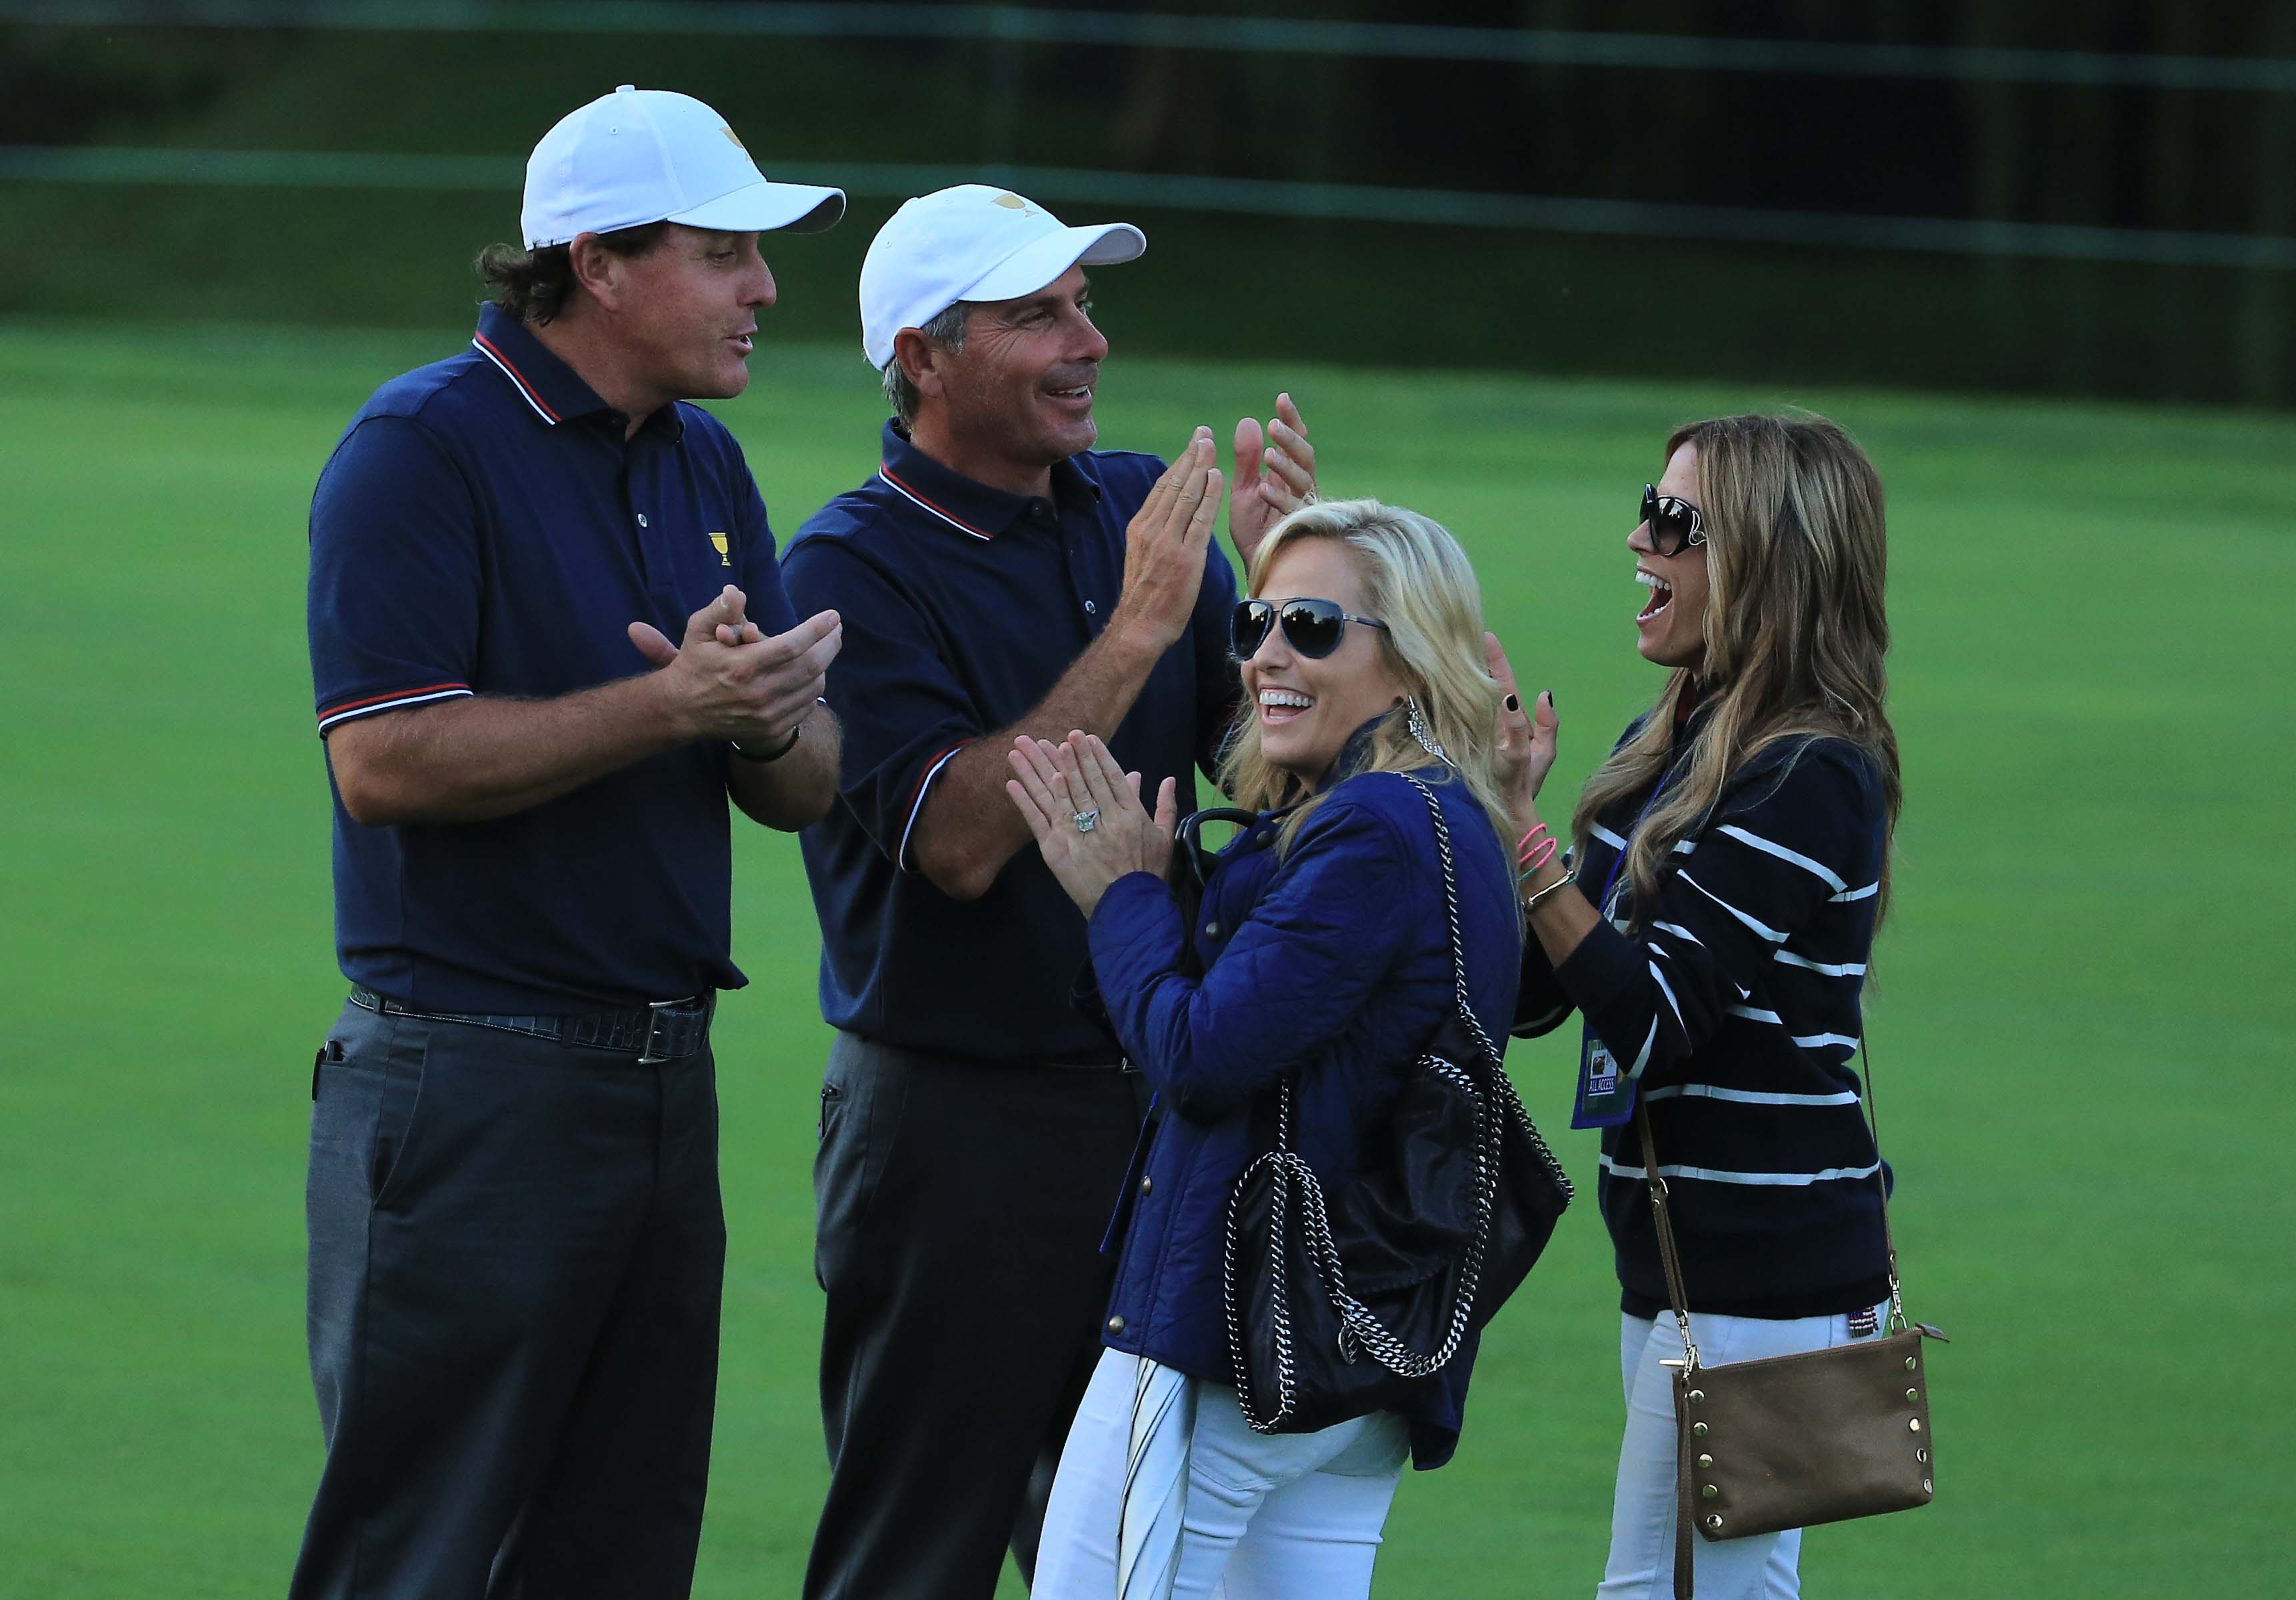 Phil Mickelson and Fred Couples